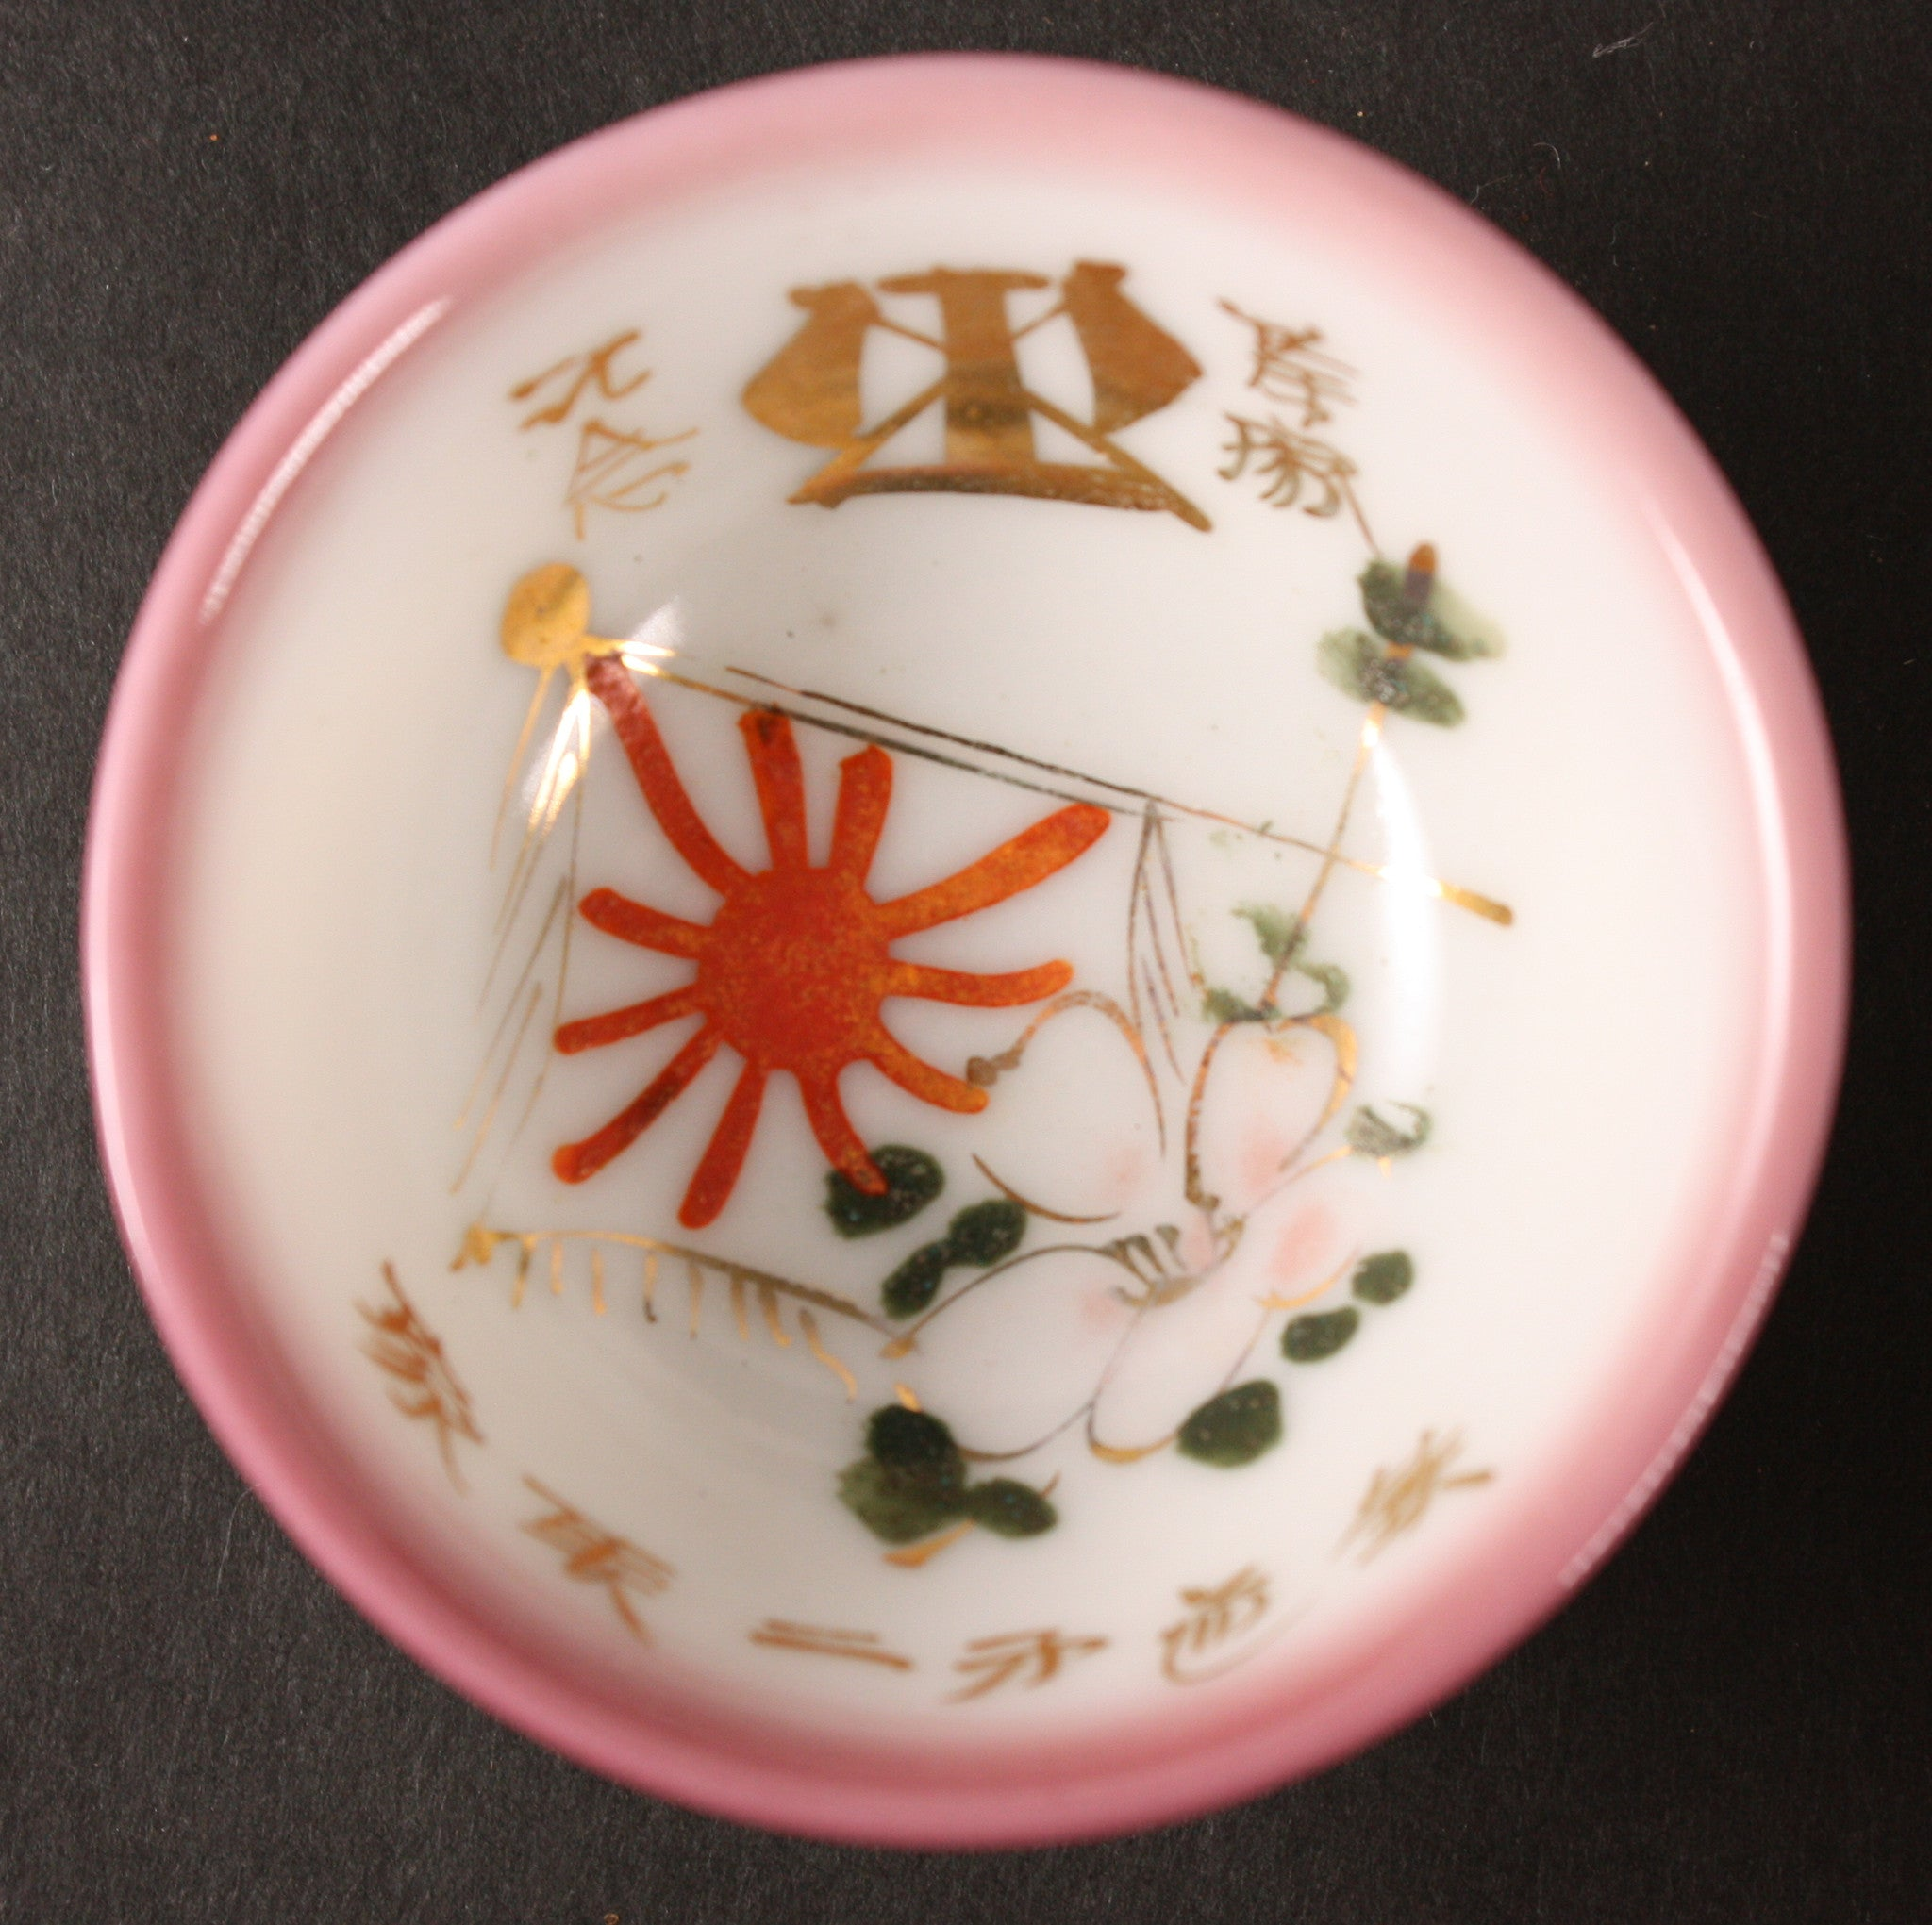 Antique Japanese WW2 Railroad Regiment Army Sake Cup